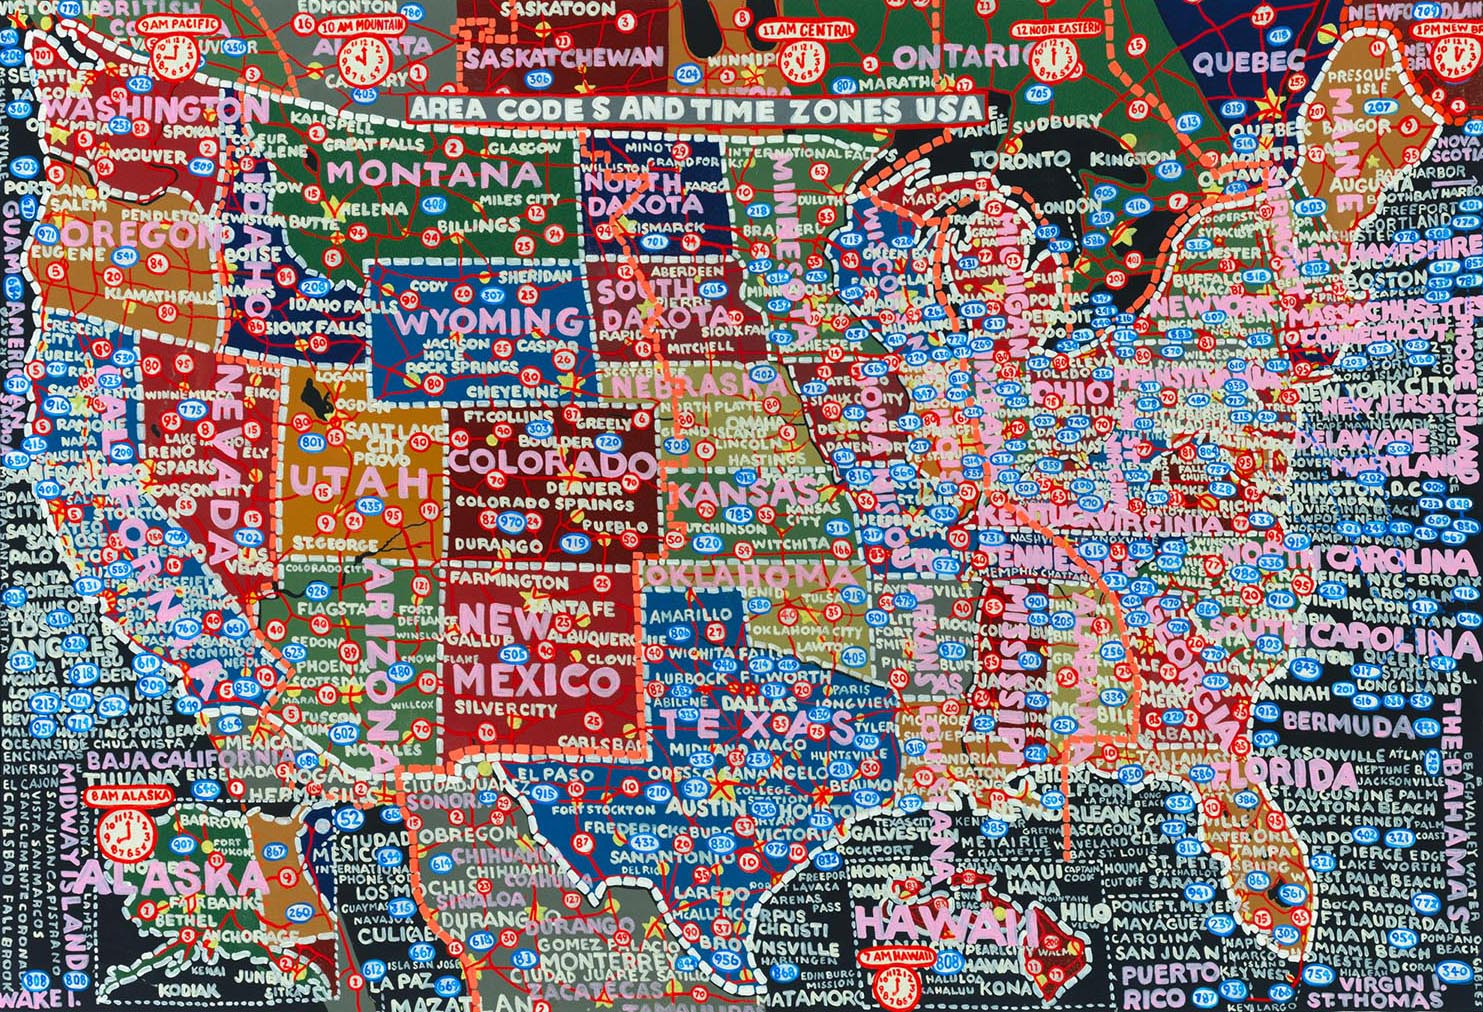 Paula Schers HandPainted SemiAccurate Maps Of America CityLab - Accrate map of us